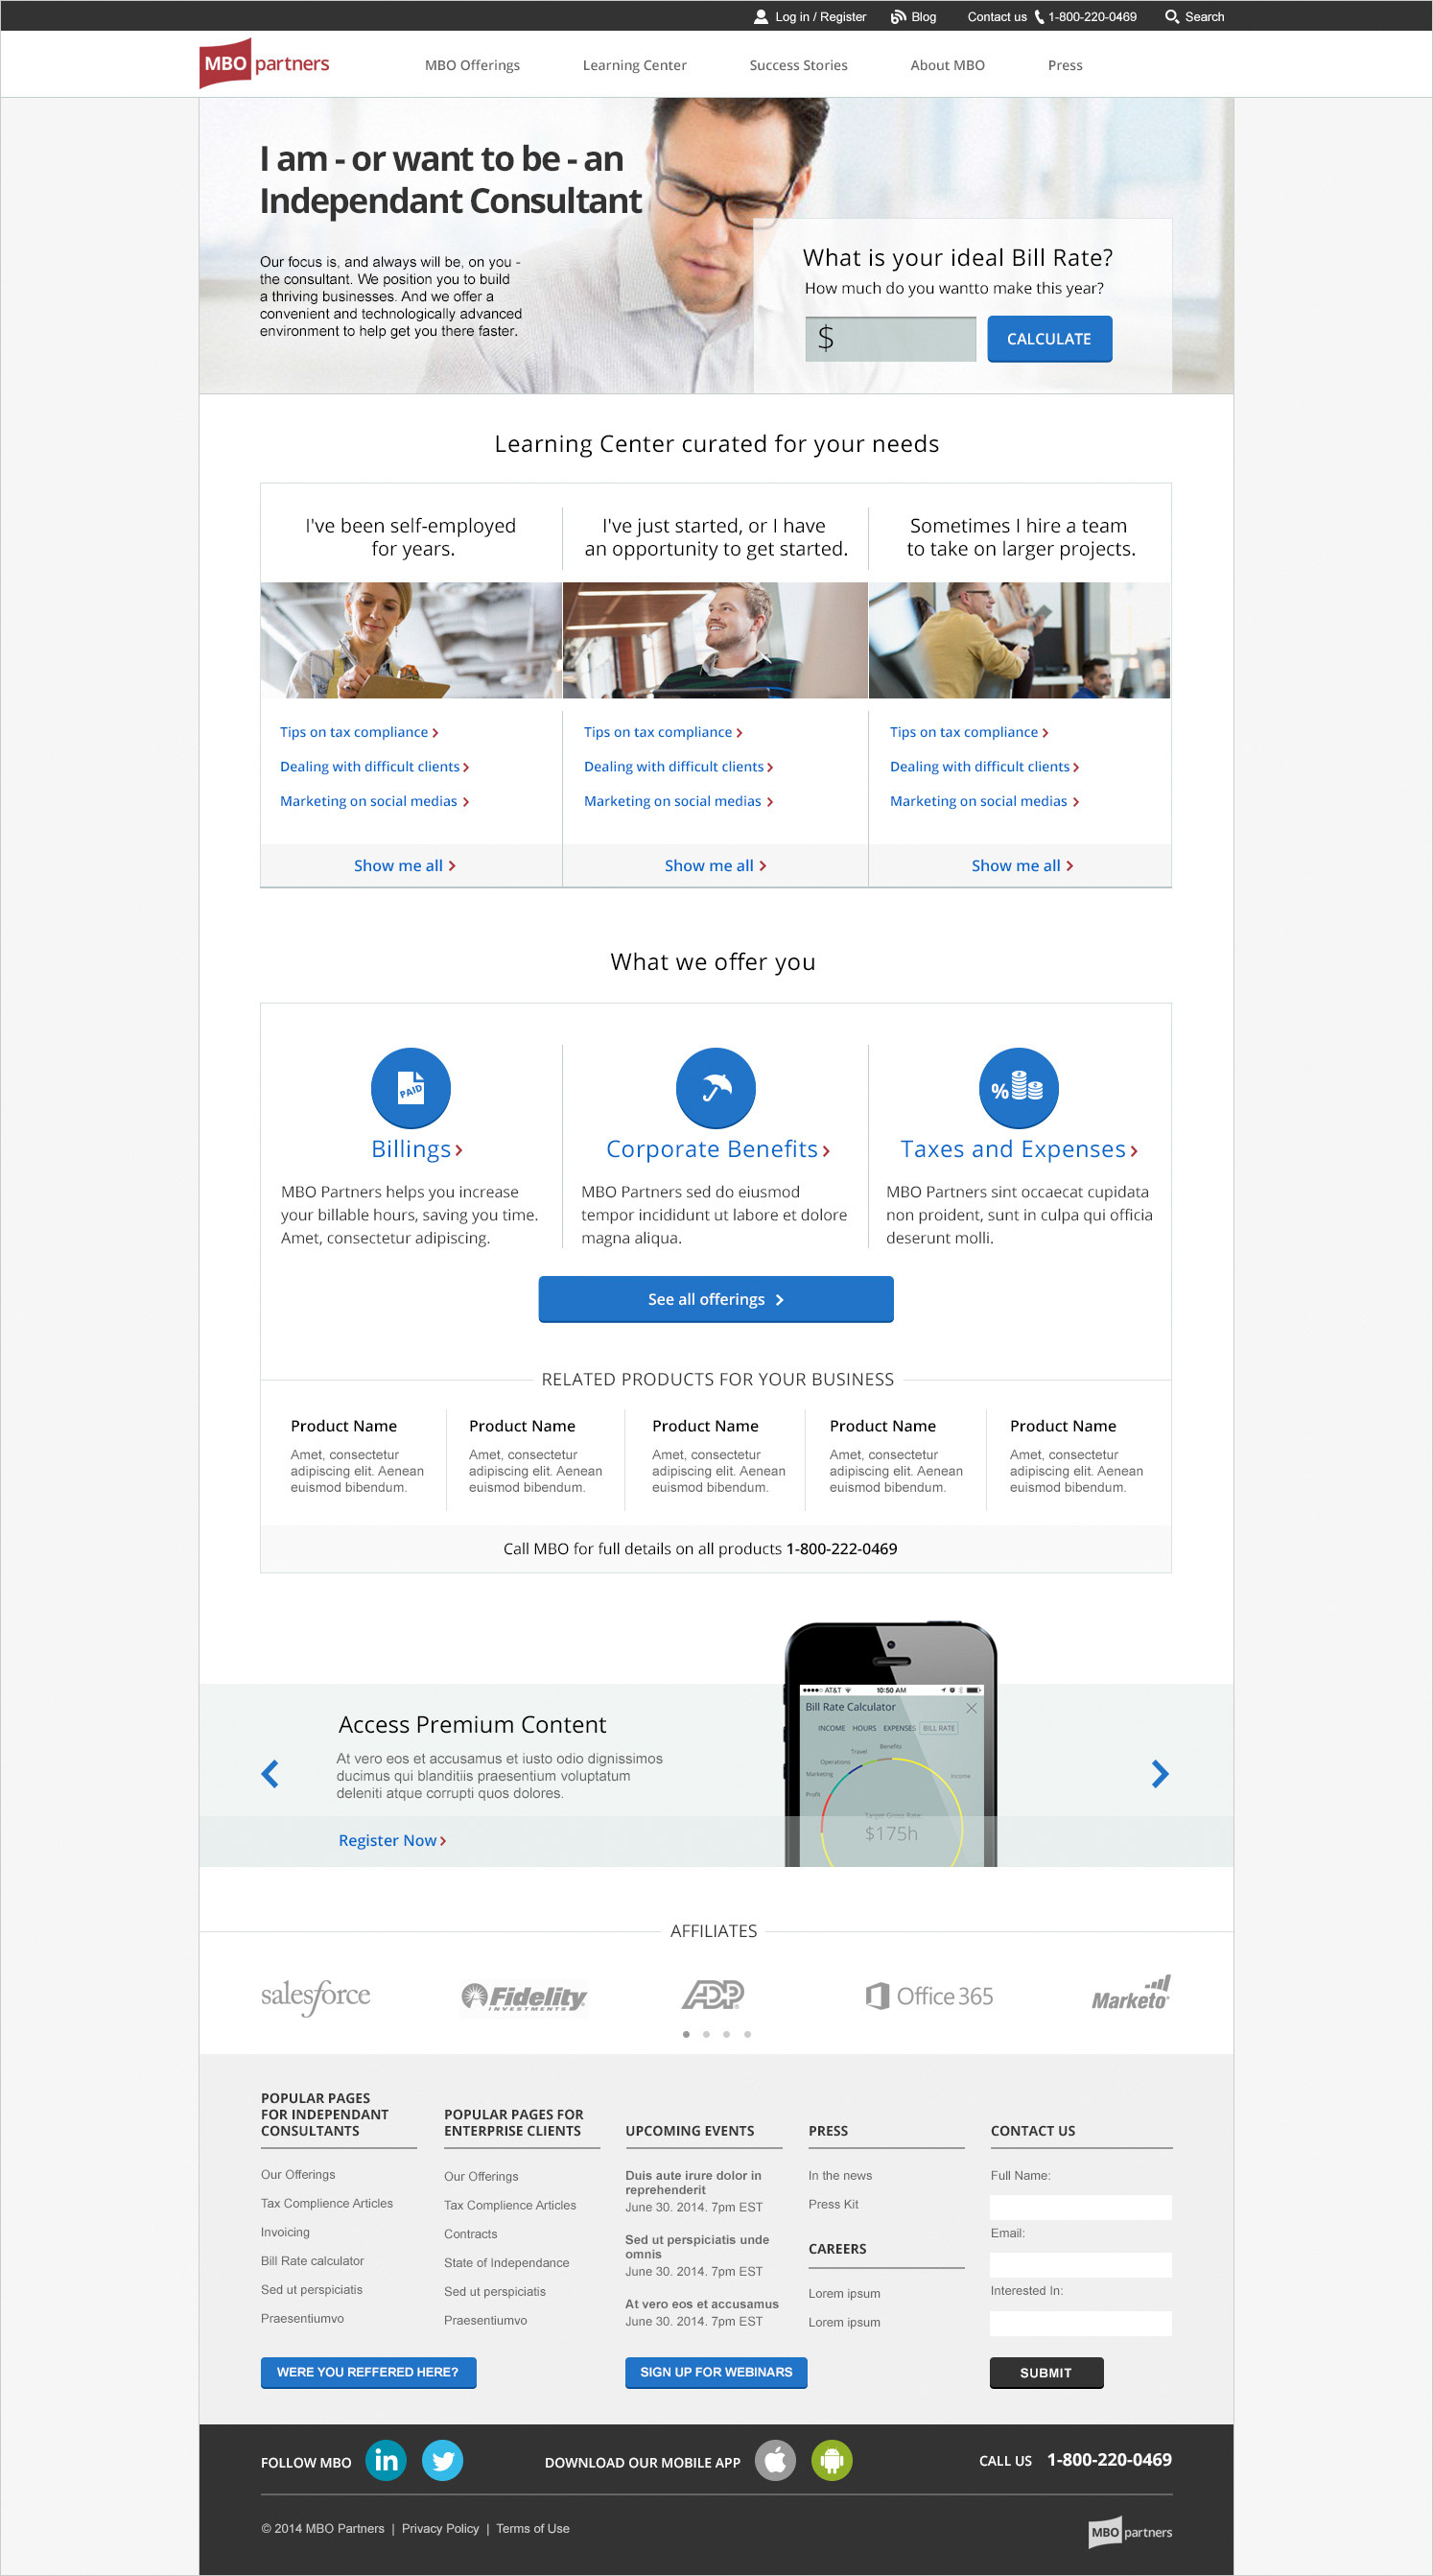 MBO Partners Web Site Redesign-0